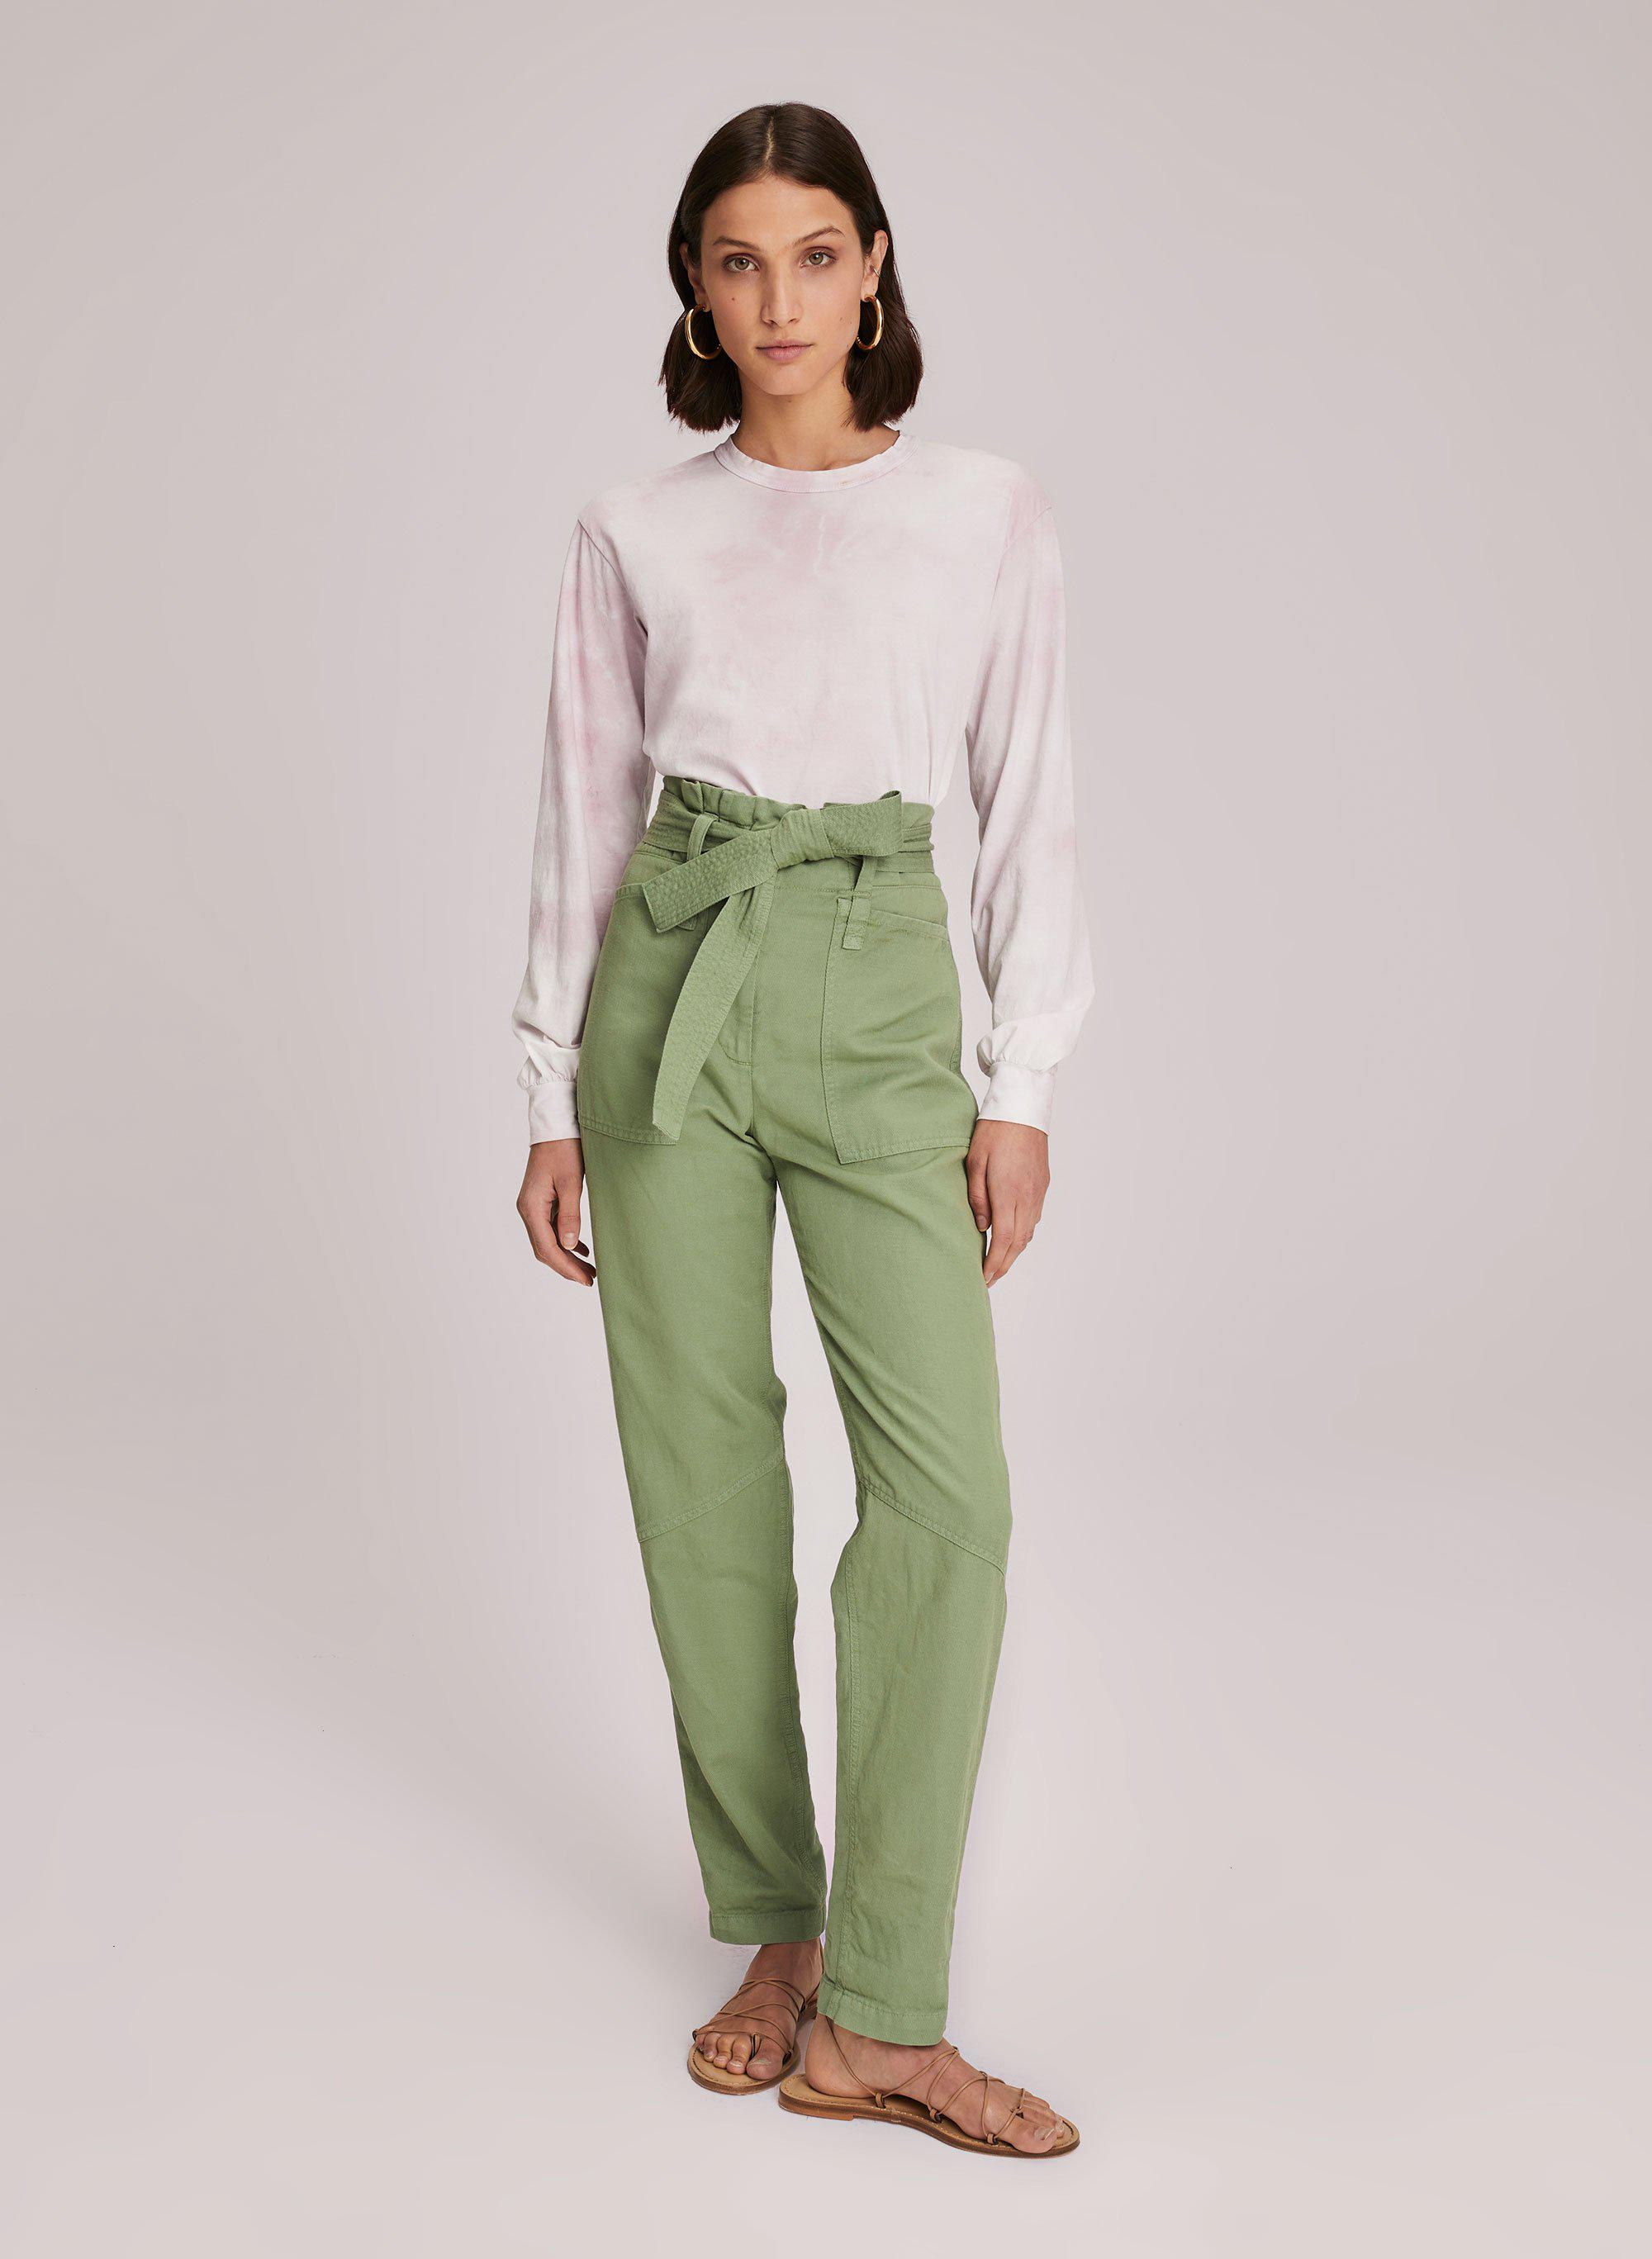 Cobin Belted Pant